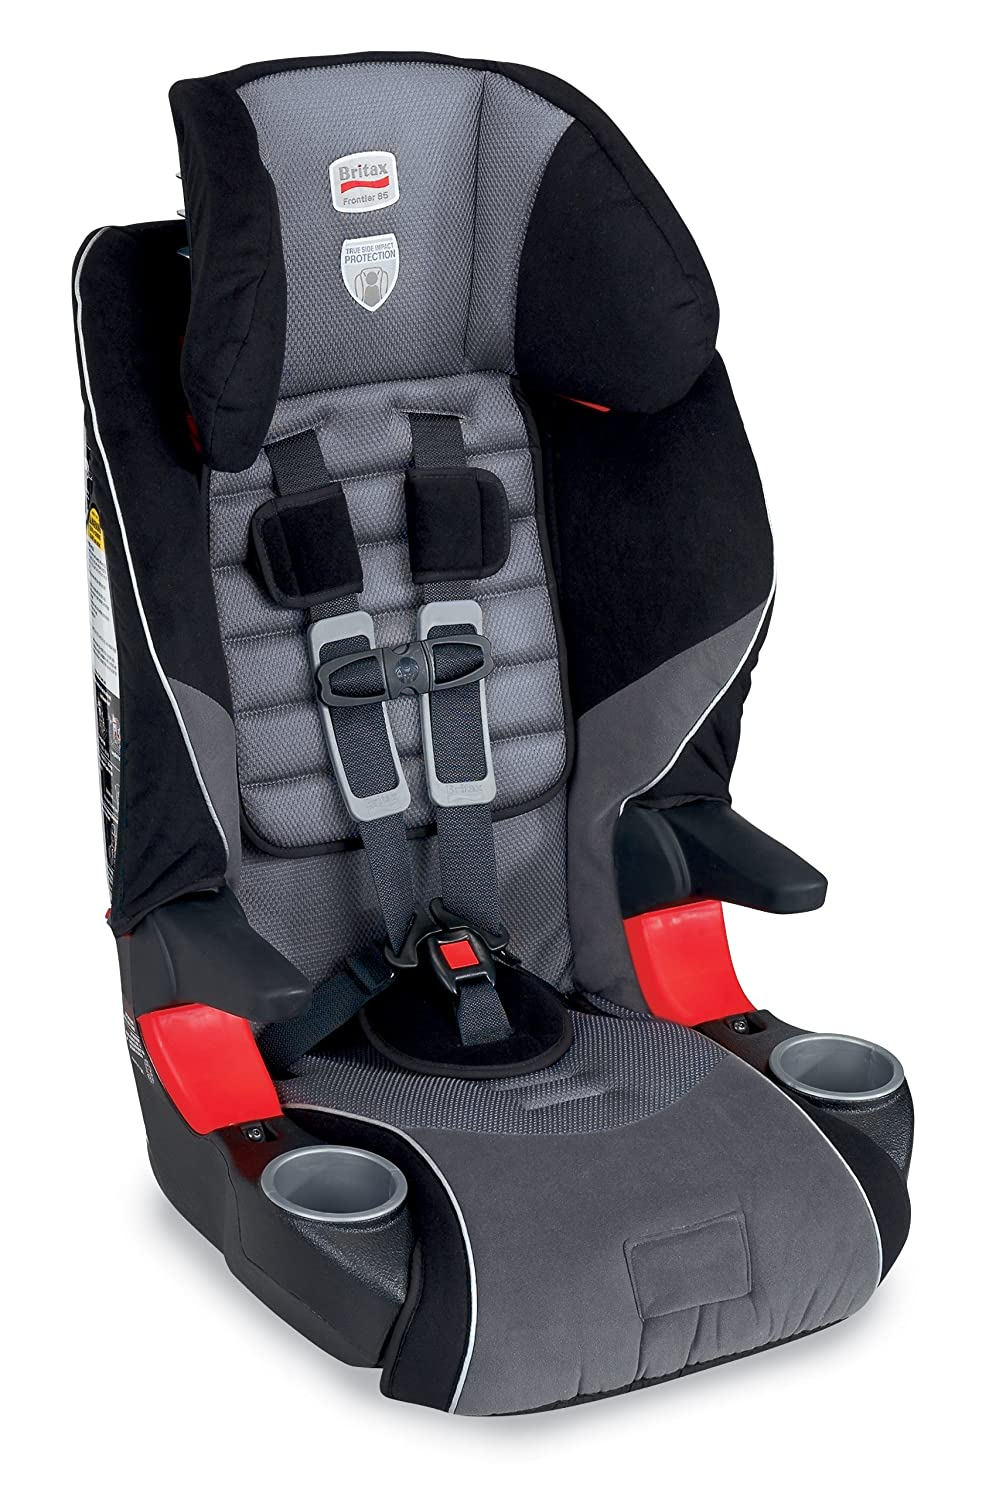 Amazon.com: Britax Frontier 85 Combination Booster Car Seat ...